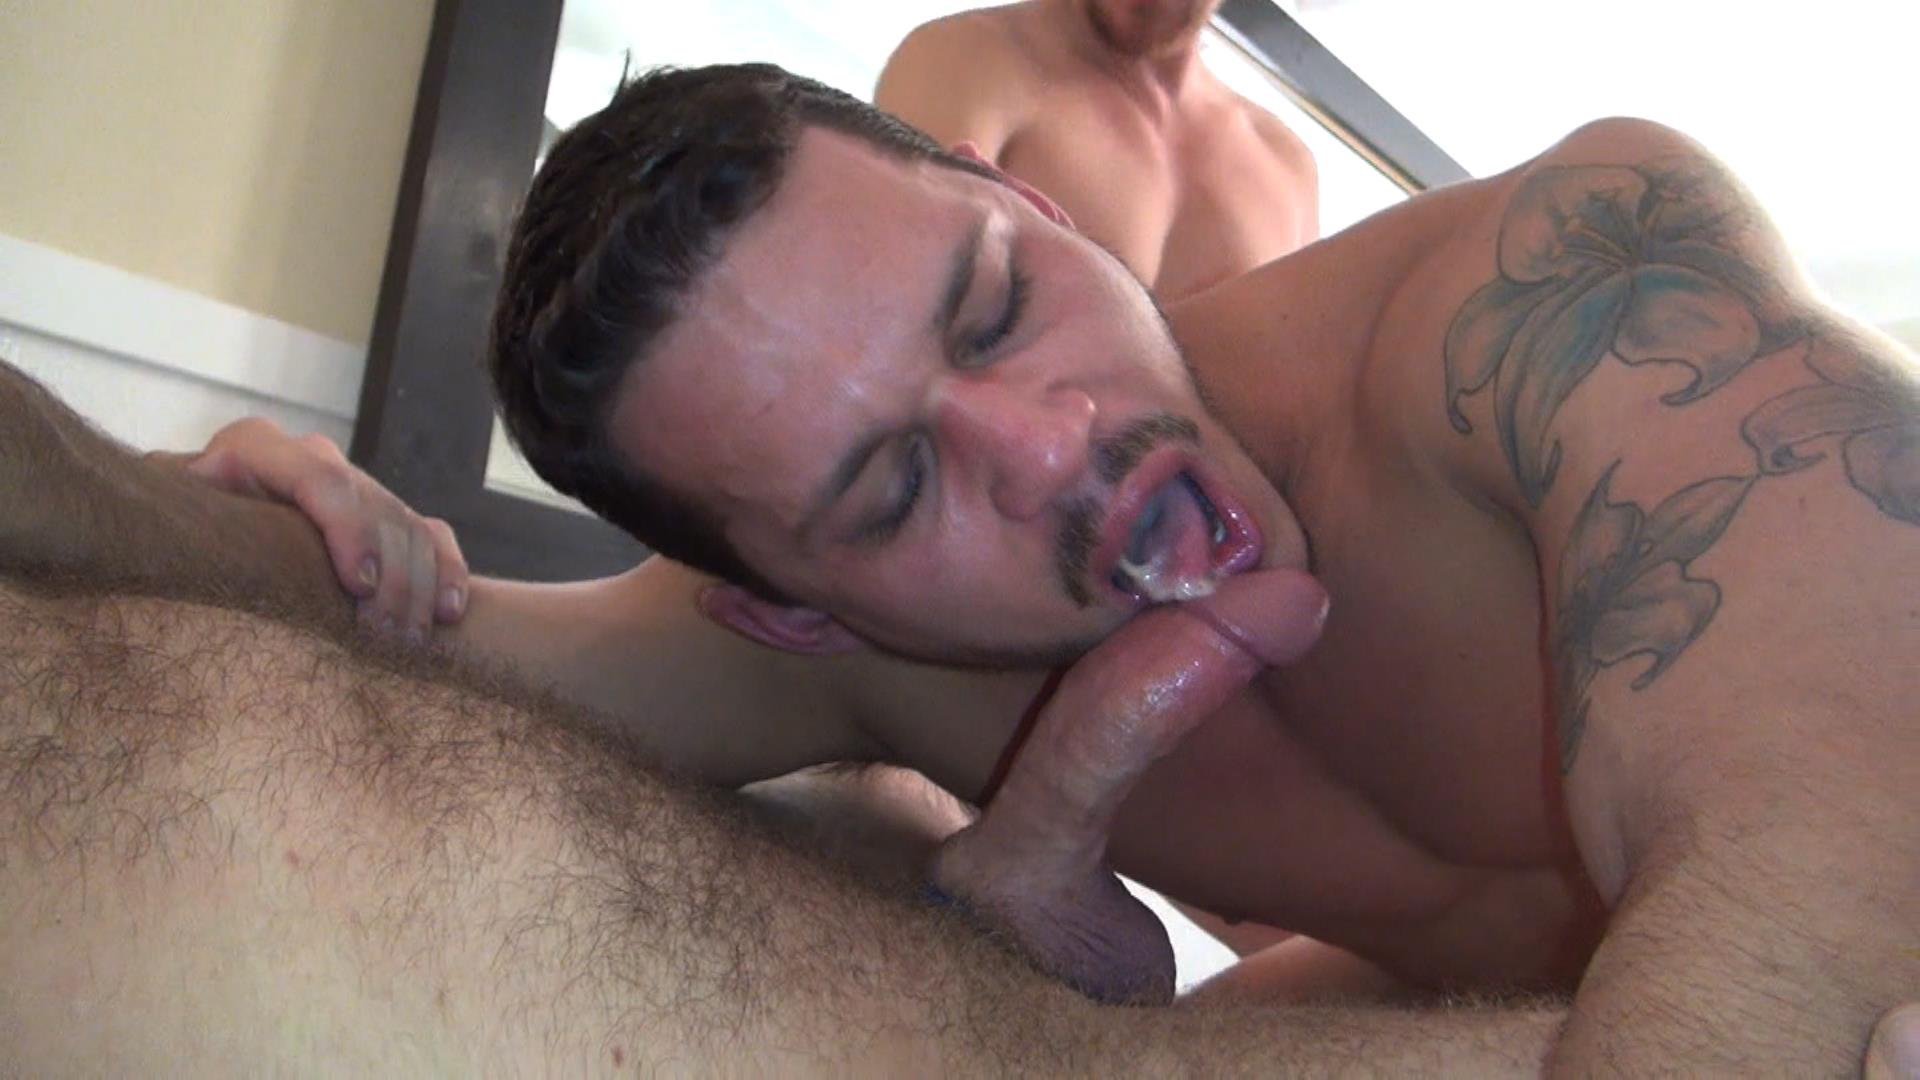 Raw-Fuck-Club-Dayton-OConnor-Tate-Ryder-Shay-Michaels-Adam-Russo-Bareback-Breeding-Amateur-Gay-Porn-8 Tate Ryder Gets Three Hairy Muscle Daddy Bareback Cocks